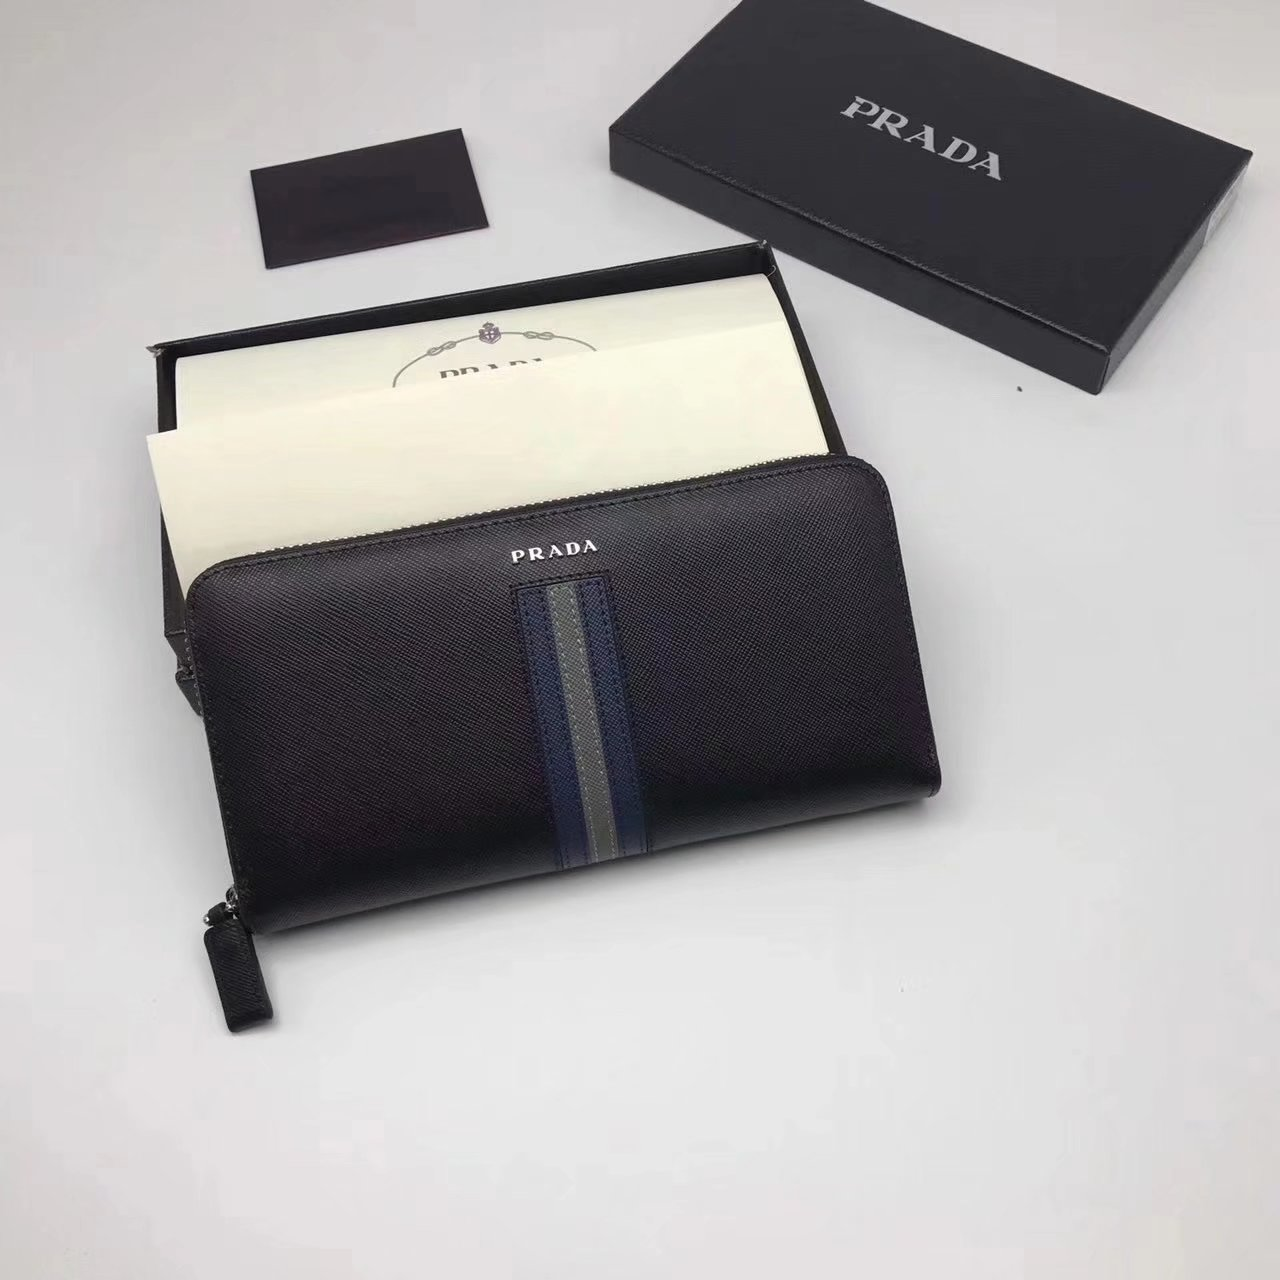 Prada 2M1317 Men Document Holder Saffiano Leather Long Wallet Black